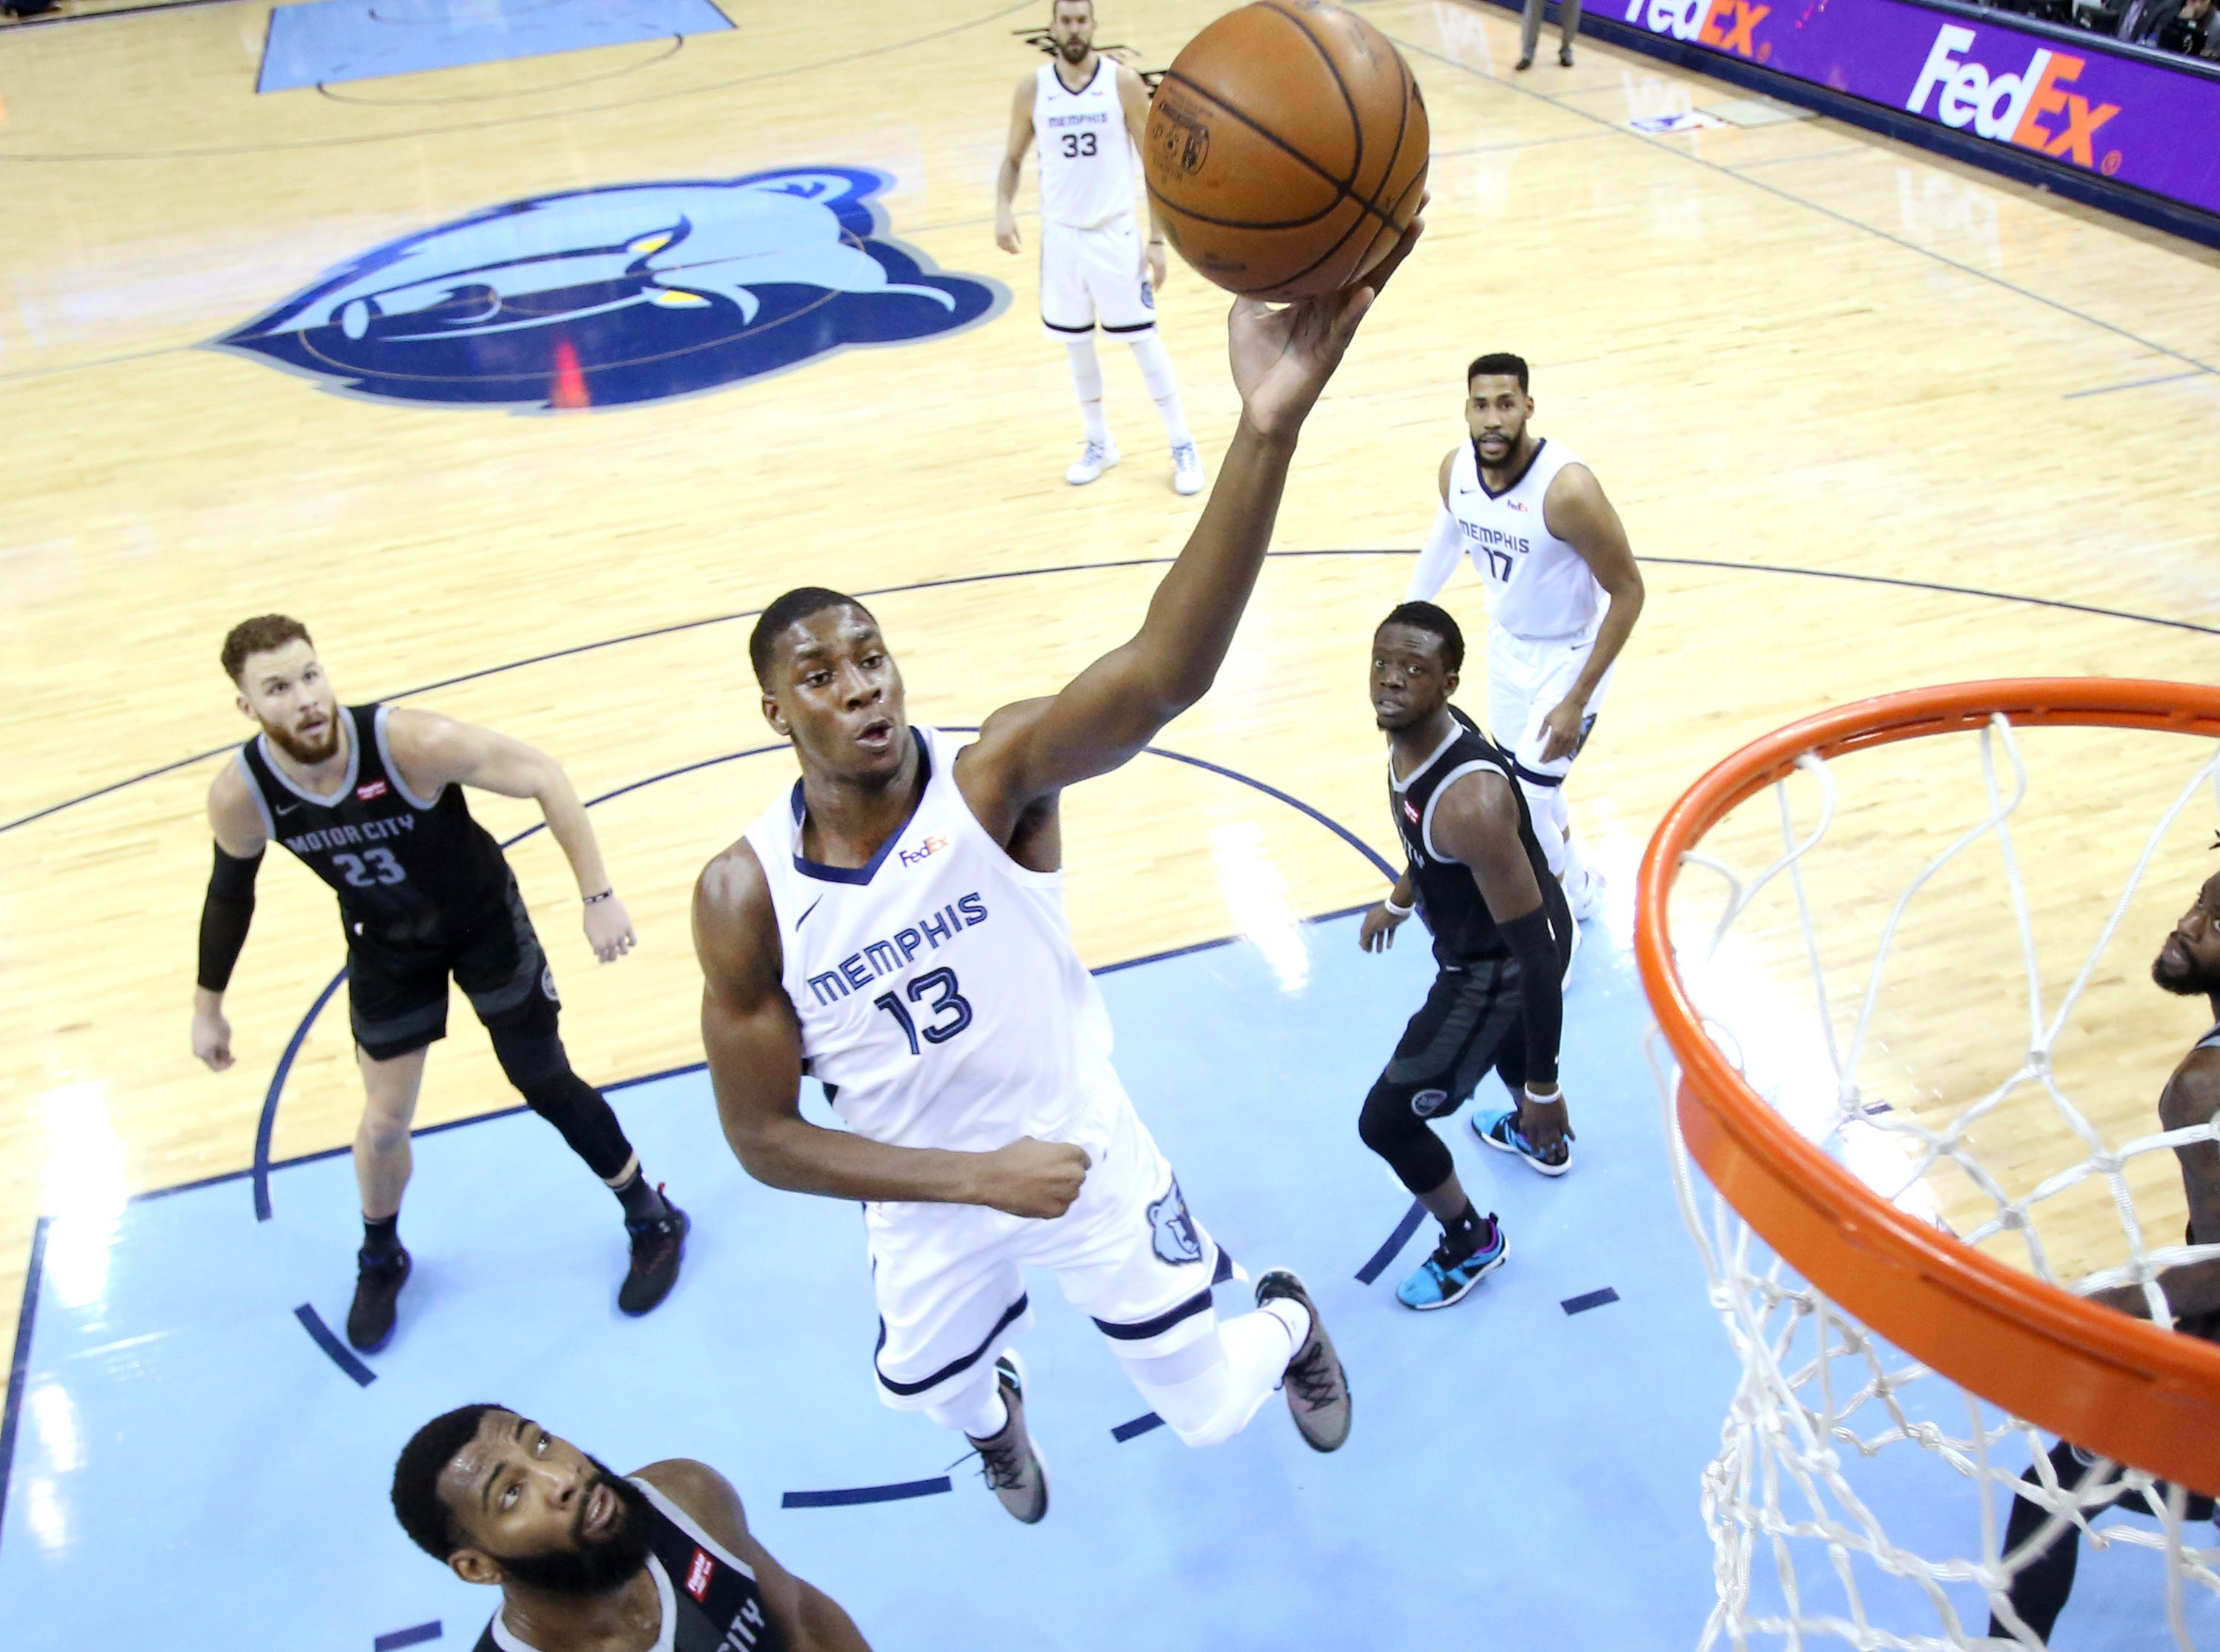 Memphis Grizzlies forward Jaren Jackson Jr. shoots the ball over Detroit Pistons center Andre Drummond during their game at the FedExForum on Wednesday, January 2, 2019.